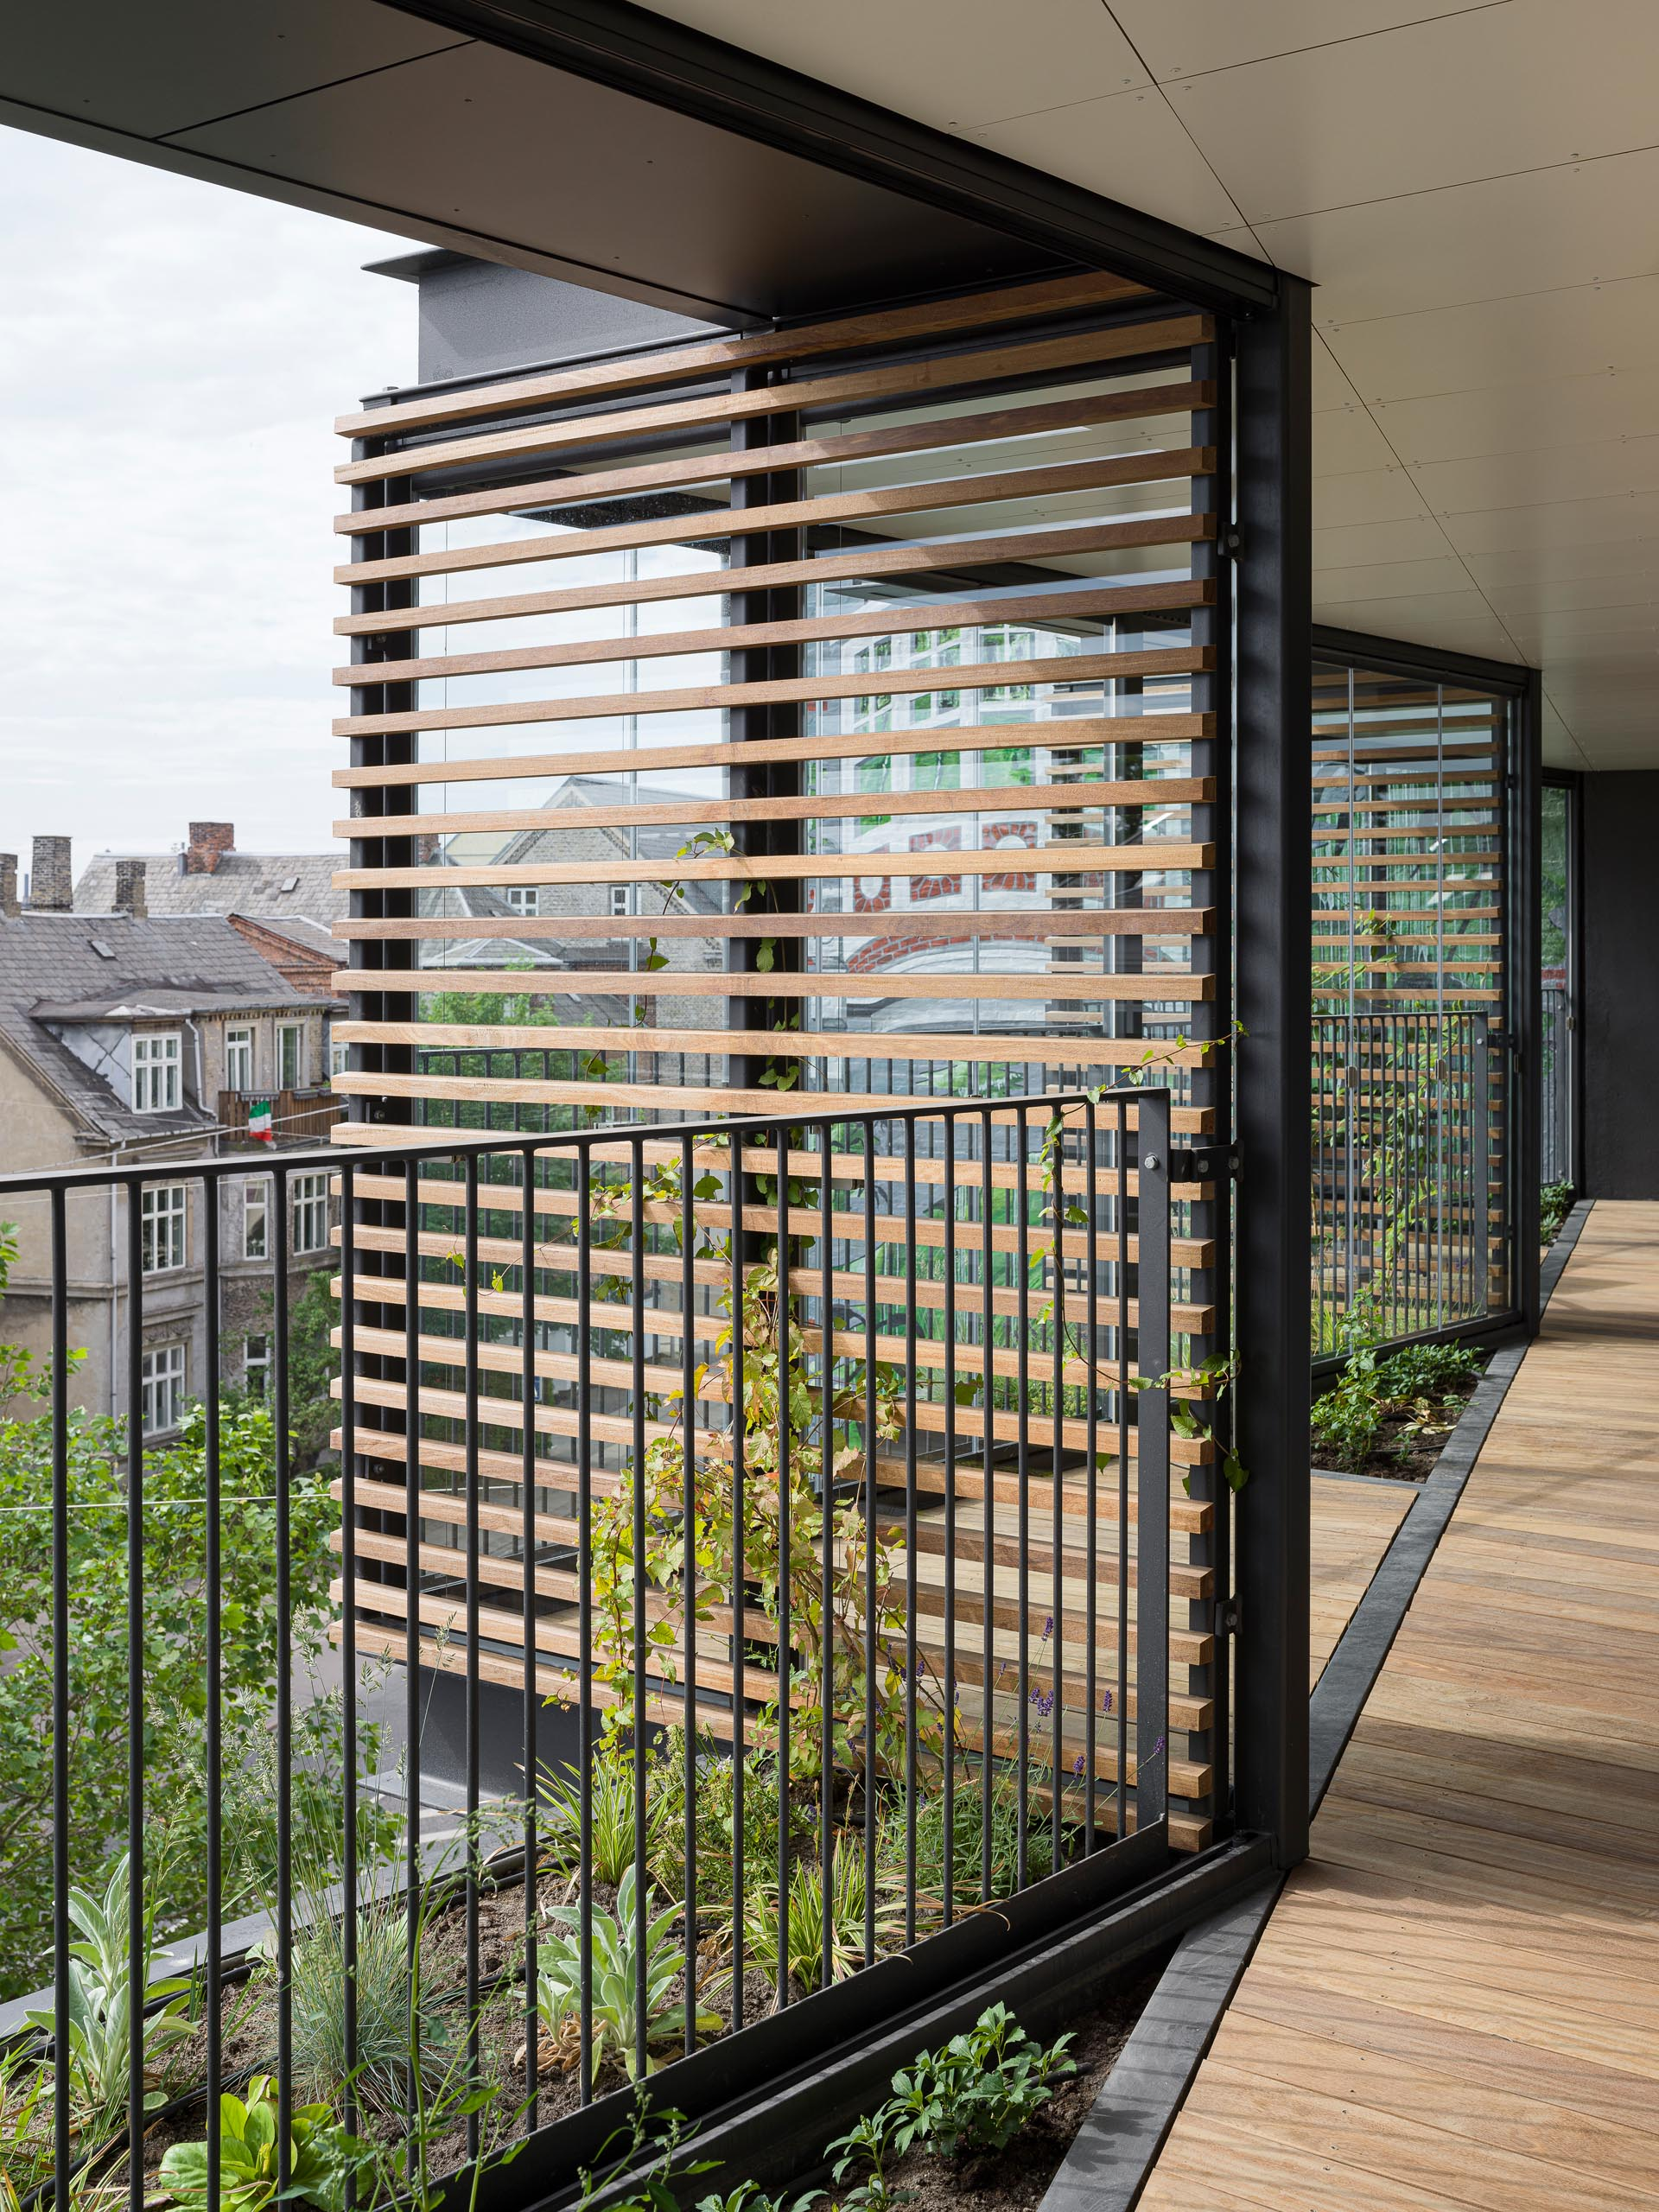 Wood screens allow ivy to grow on the facade of an apartment building.